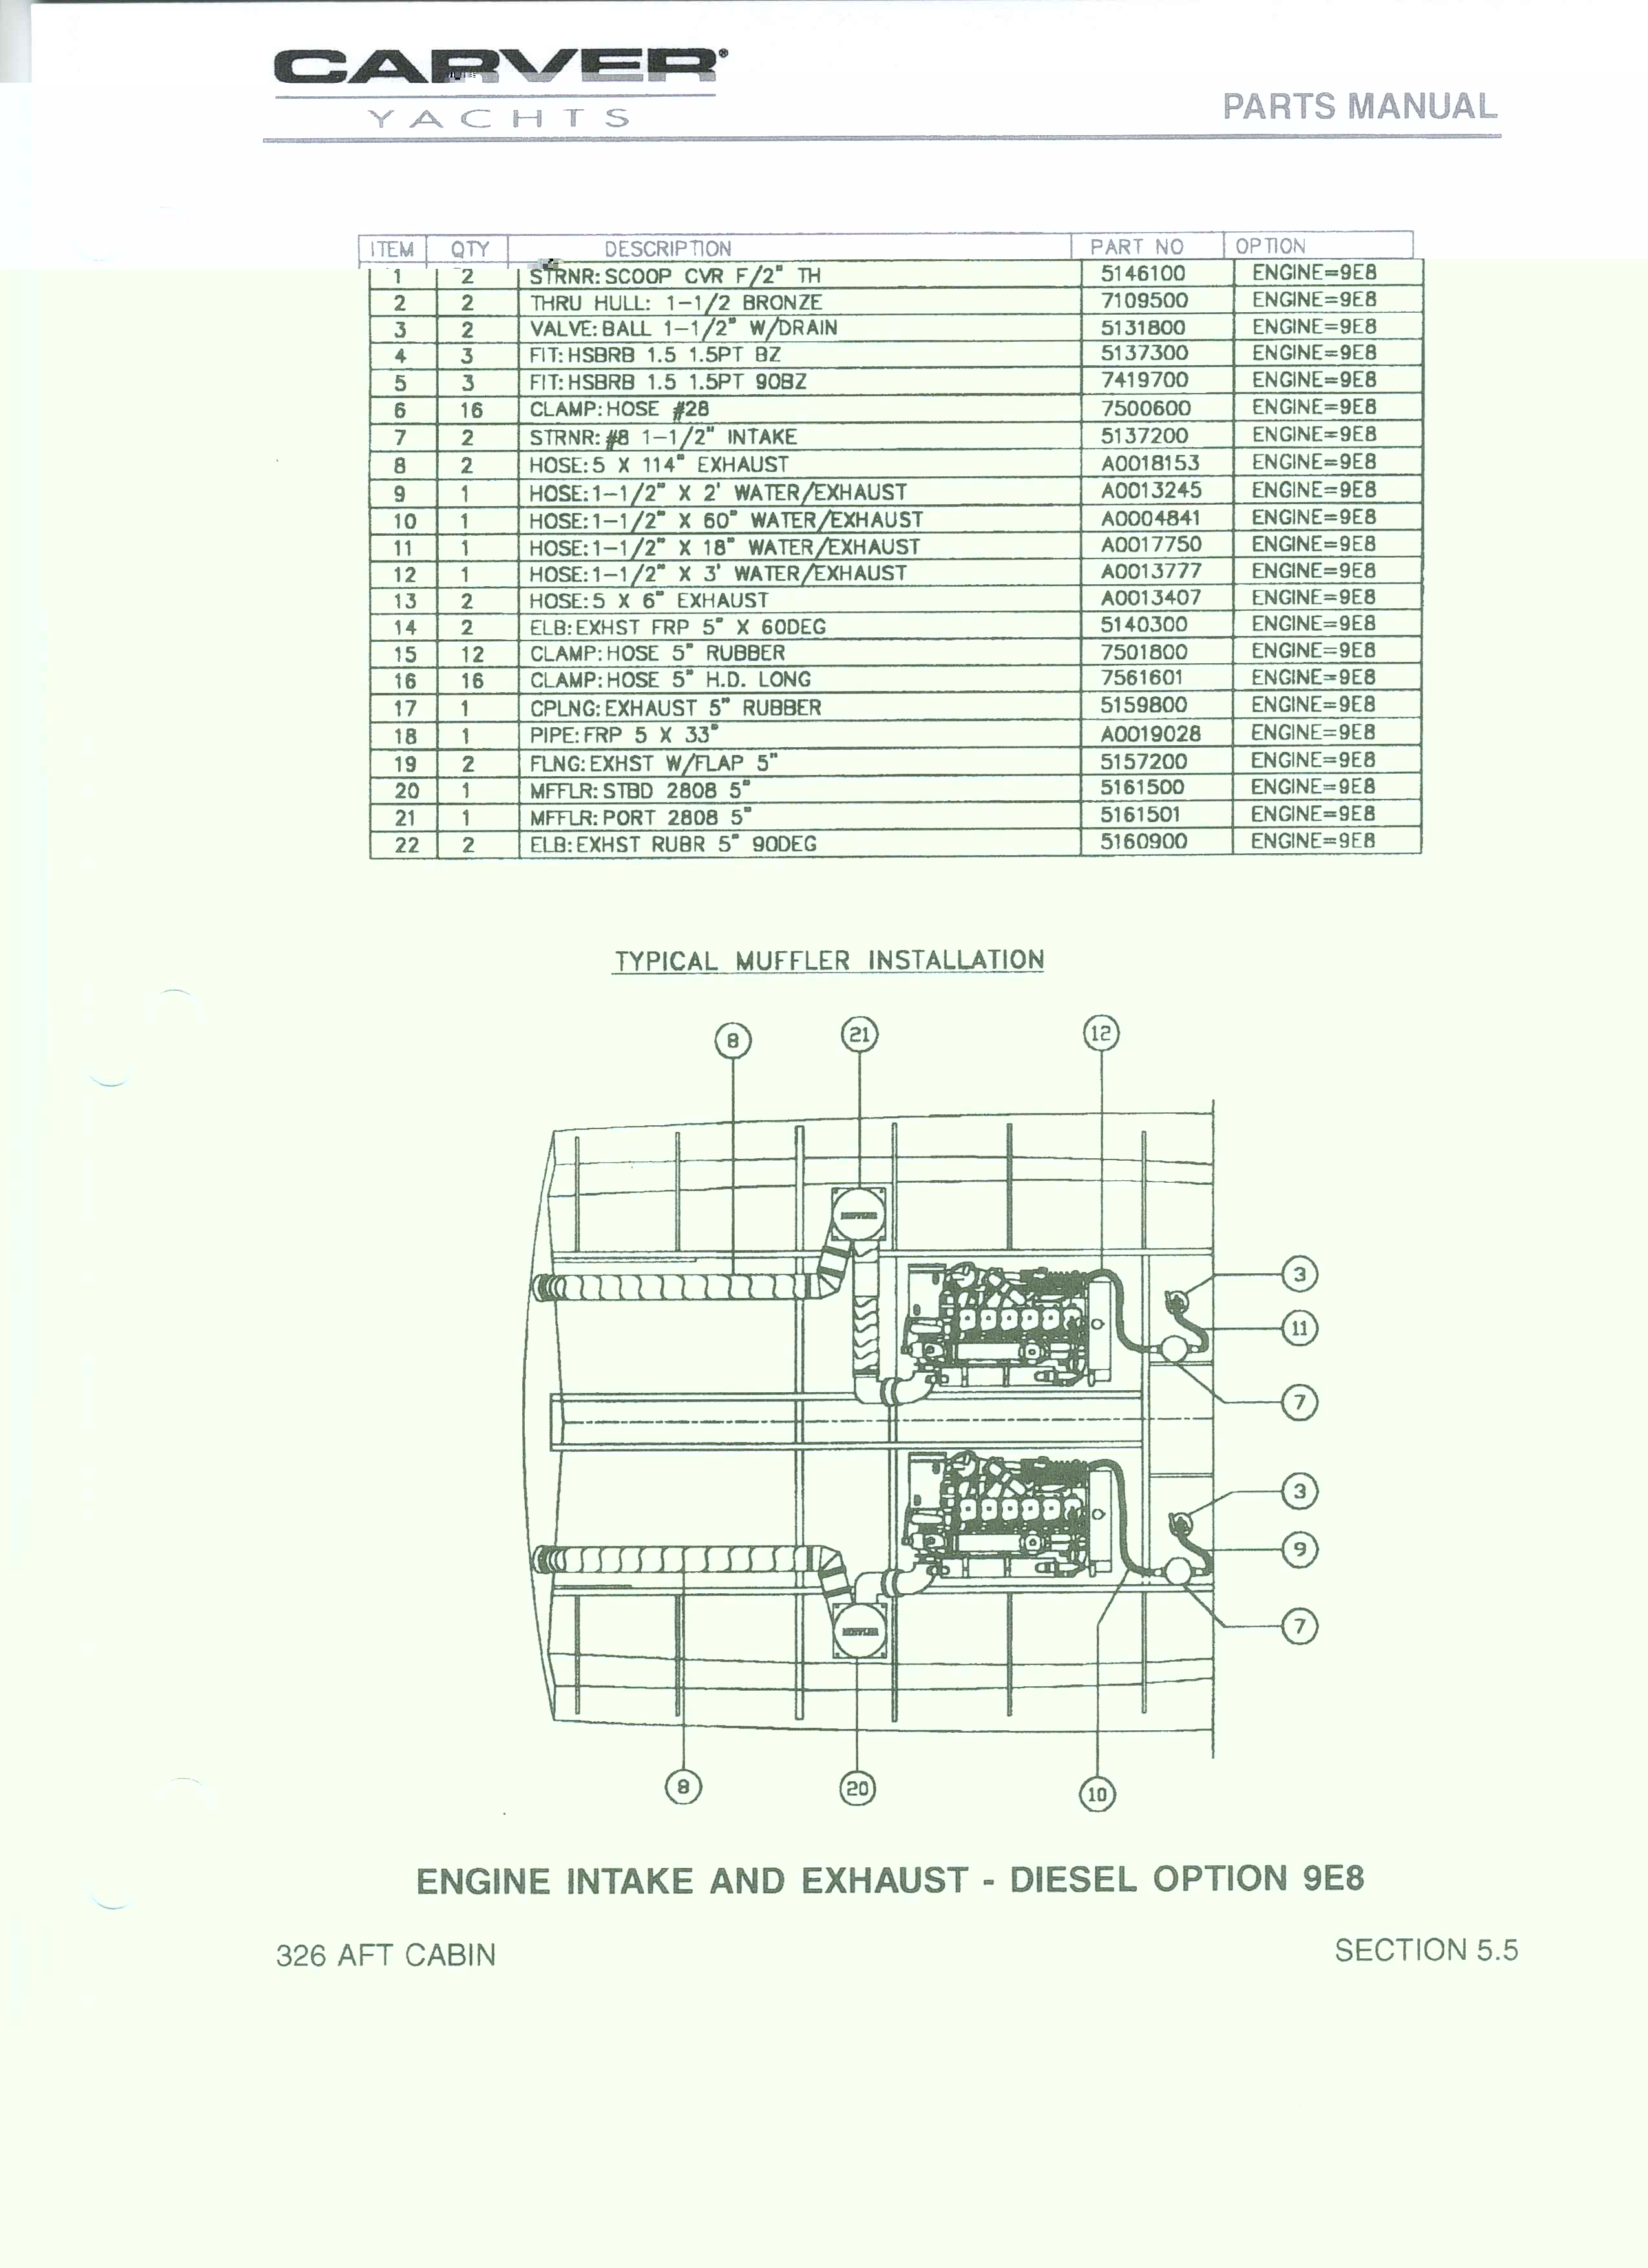 clifford 570 4x wiring diagram trusted wiring diagram rh dafpods co